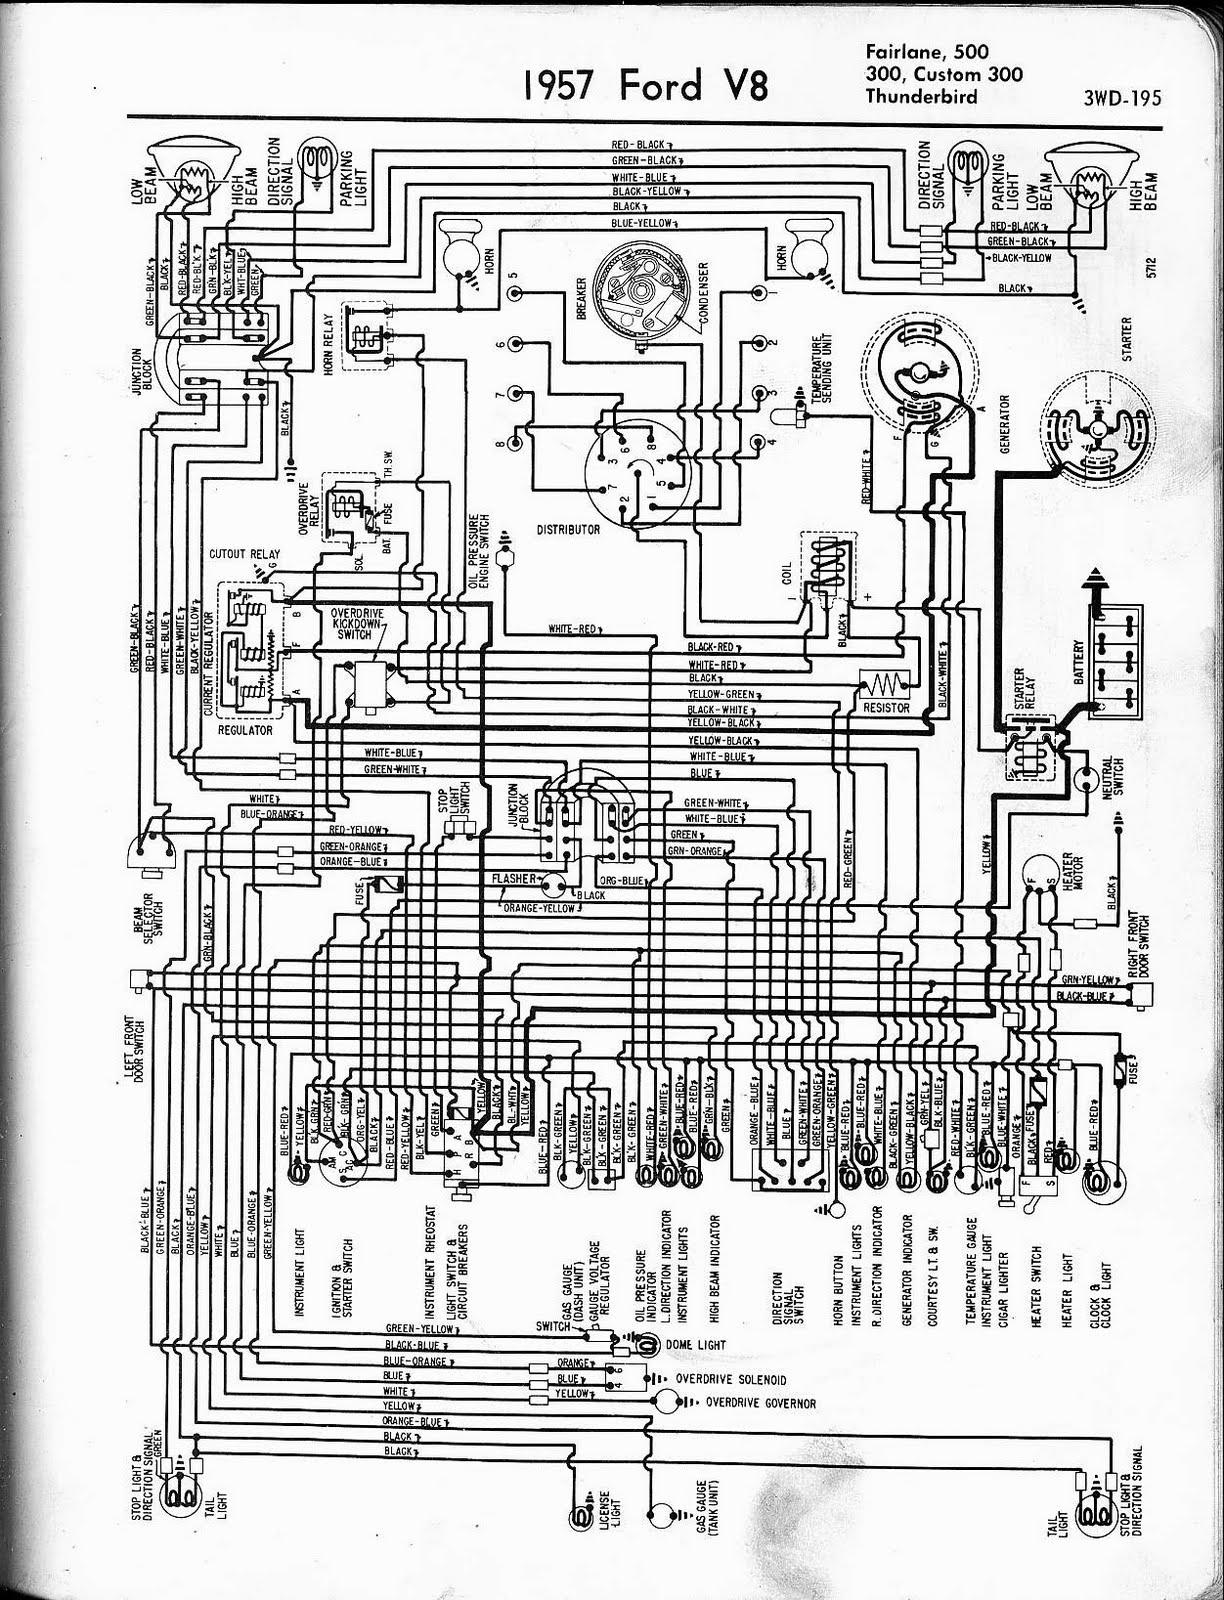 free auto wiring diagram 1957 ford v8 fairlane custom300 [ 1224 x 1600 Pixel ]